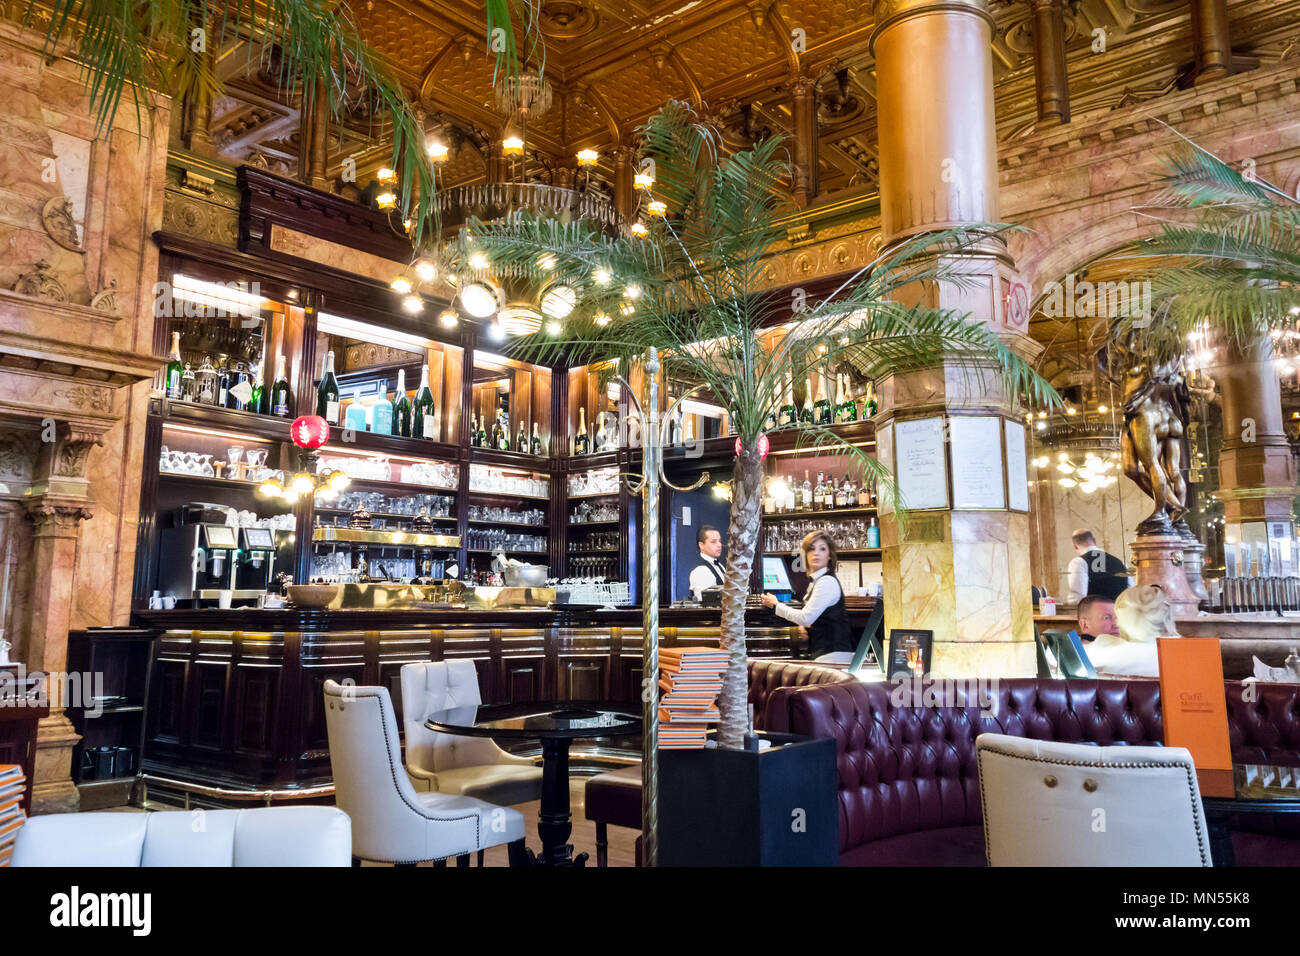 Interior of the Cafe Metropole in Brussels - Stock Image